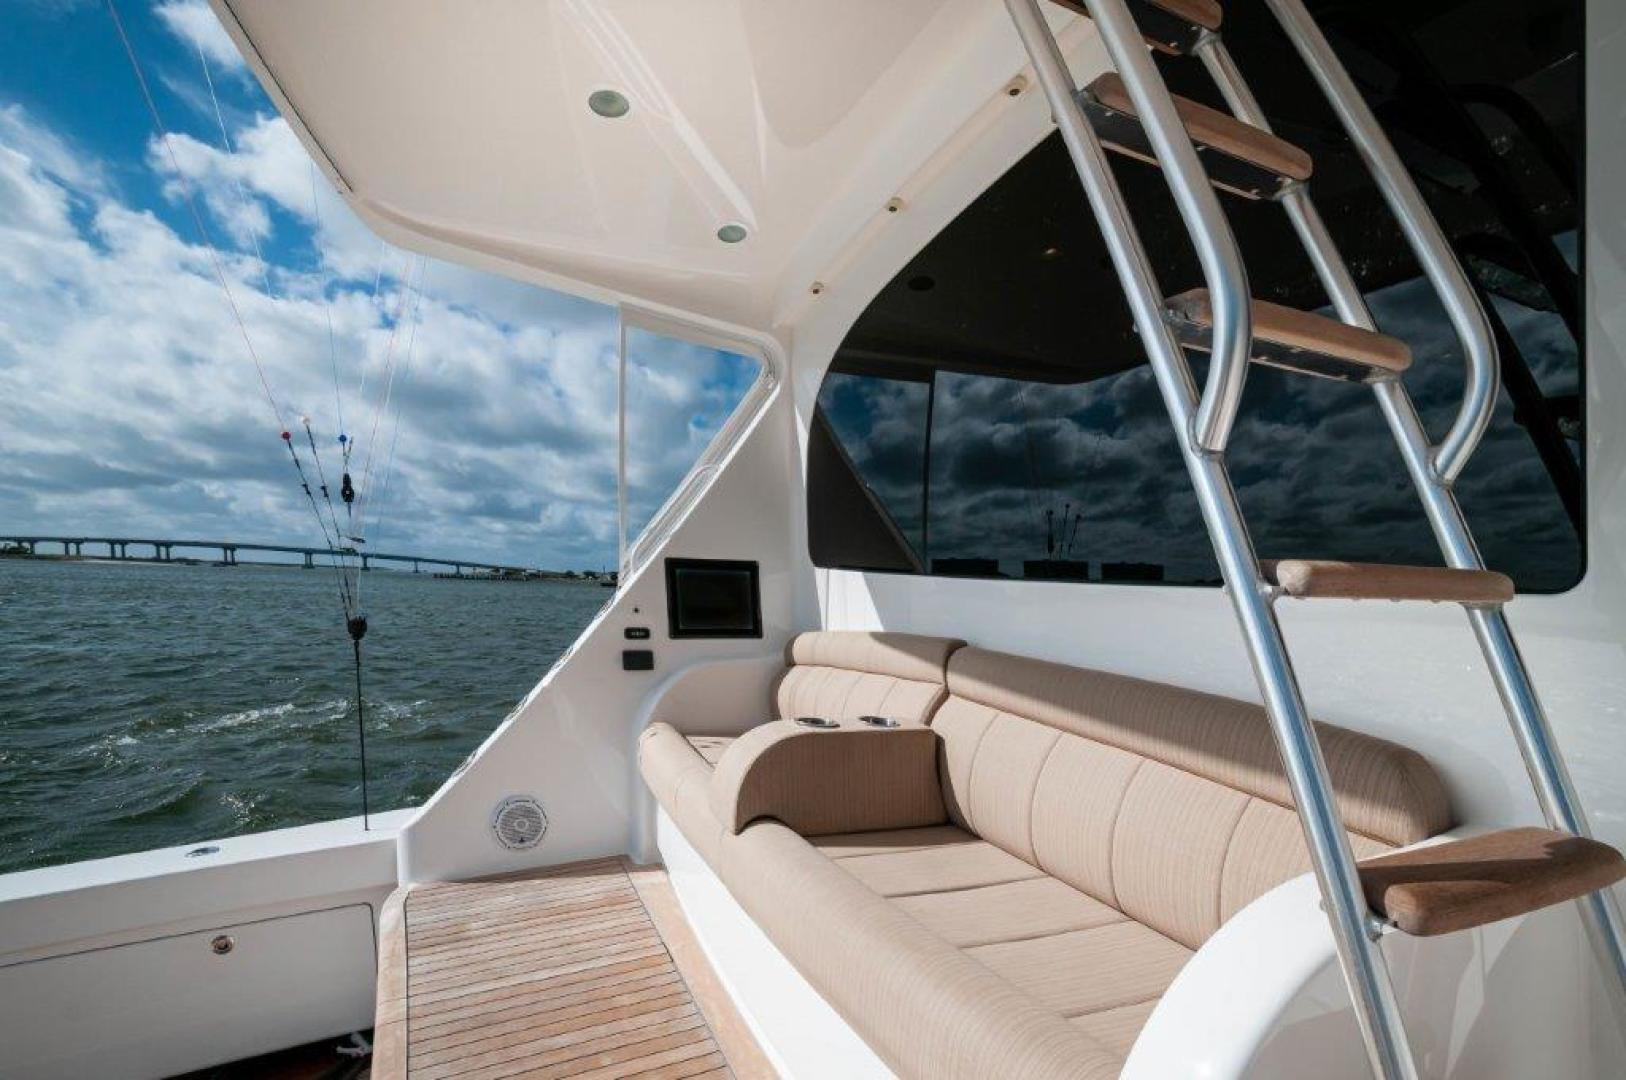 Viking-72 Enclosed Bridge 2017-SHARE E Orange Beach-Alabama-United States-2017 72 EB Viking SHARE-E Cockpit-1233216 | Thumbnail